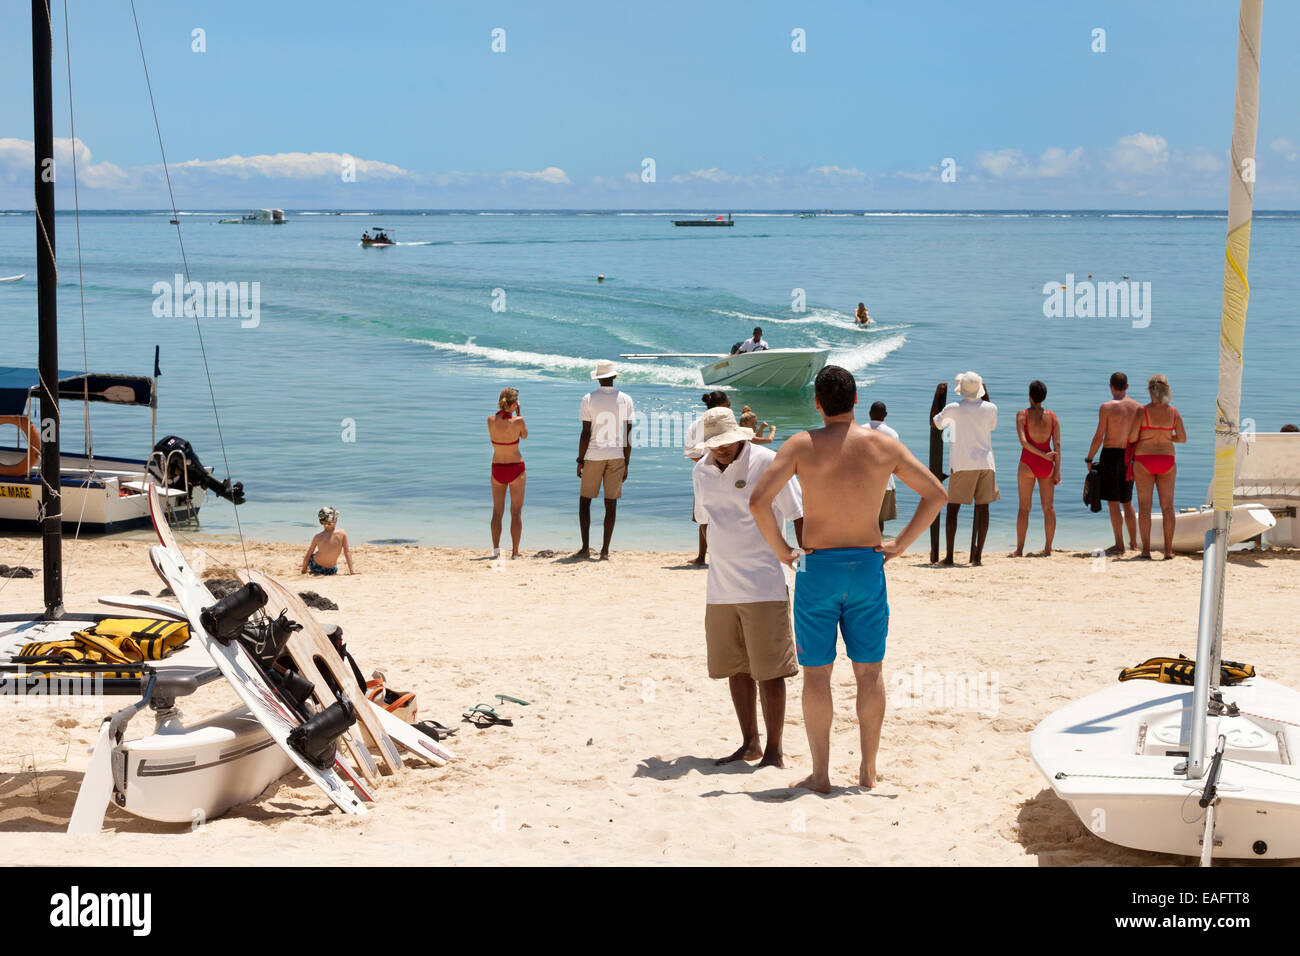 Tourists doing watersports, Belle Mare beach, east coast, Mauritius - Stock Image